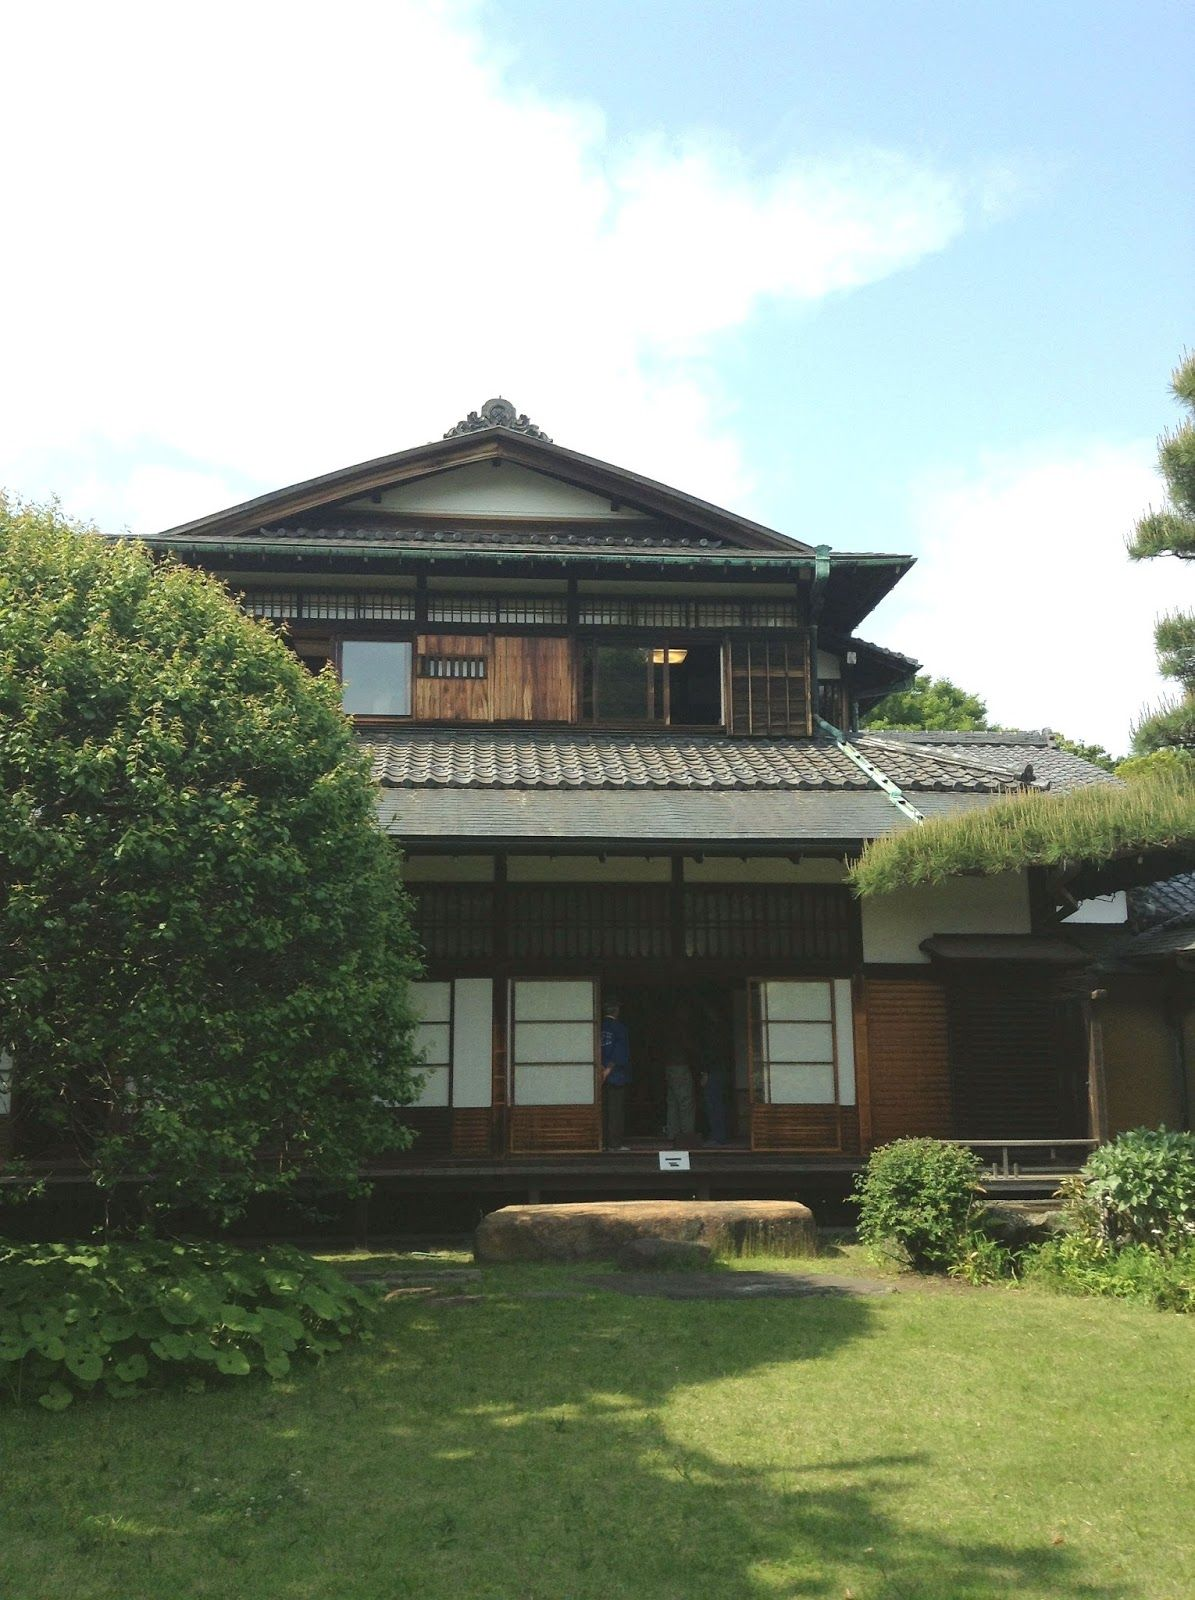 Modern Japanese Houses Design Architecture : Modern Japanese Houses ...